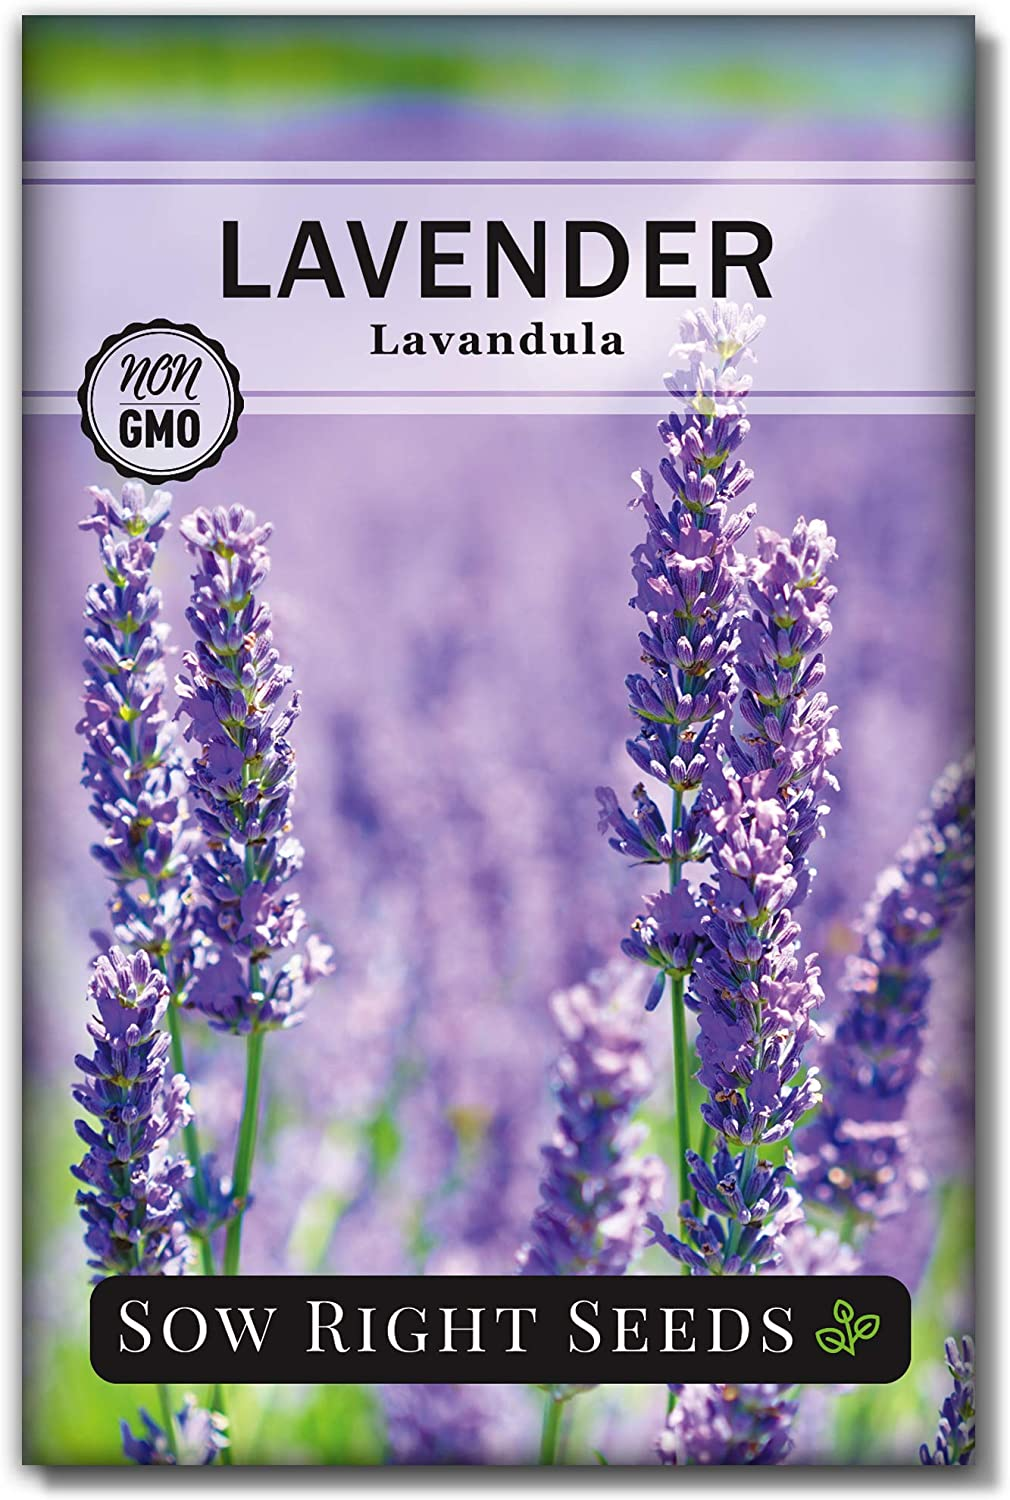 Sow Right Seeds - Lavender Seeds for Planting; Non-GMO Heirloom Seeds with Instructions to Plant and Grow a Beautiful Indoor or Outdoor herb Garden; Great Gardening Gift (1)